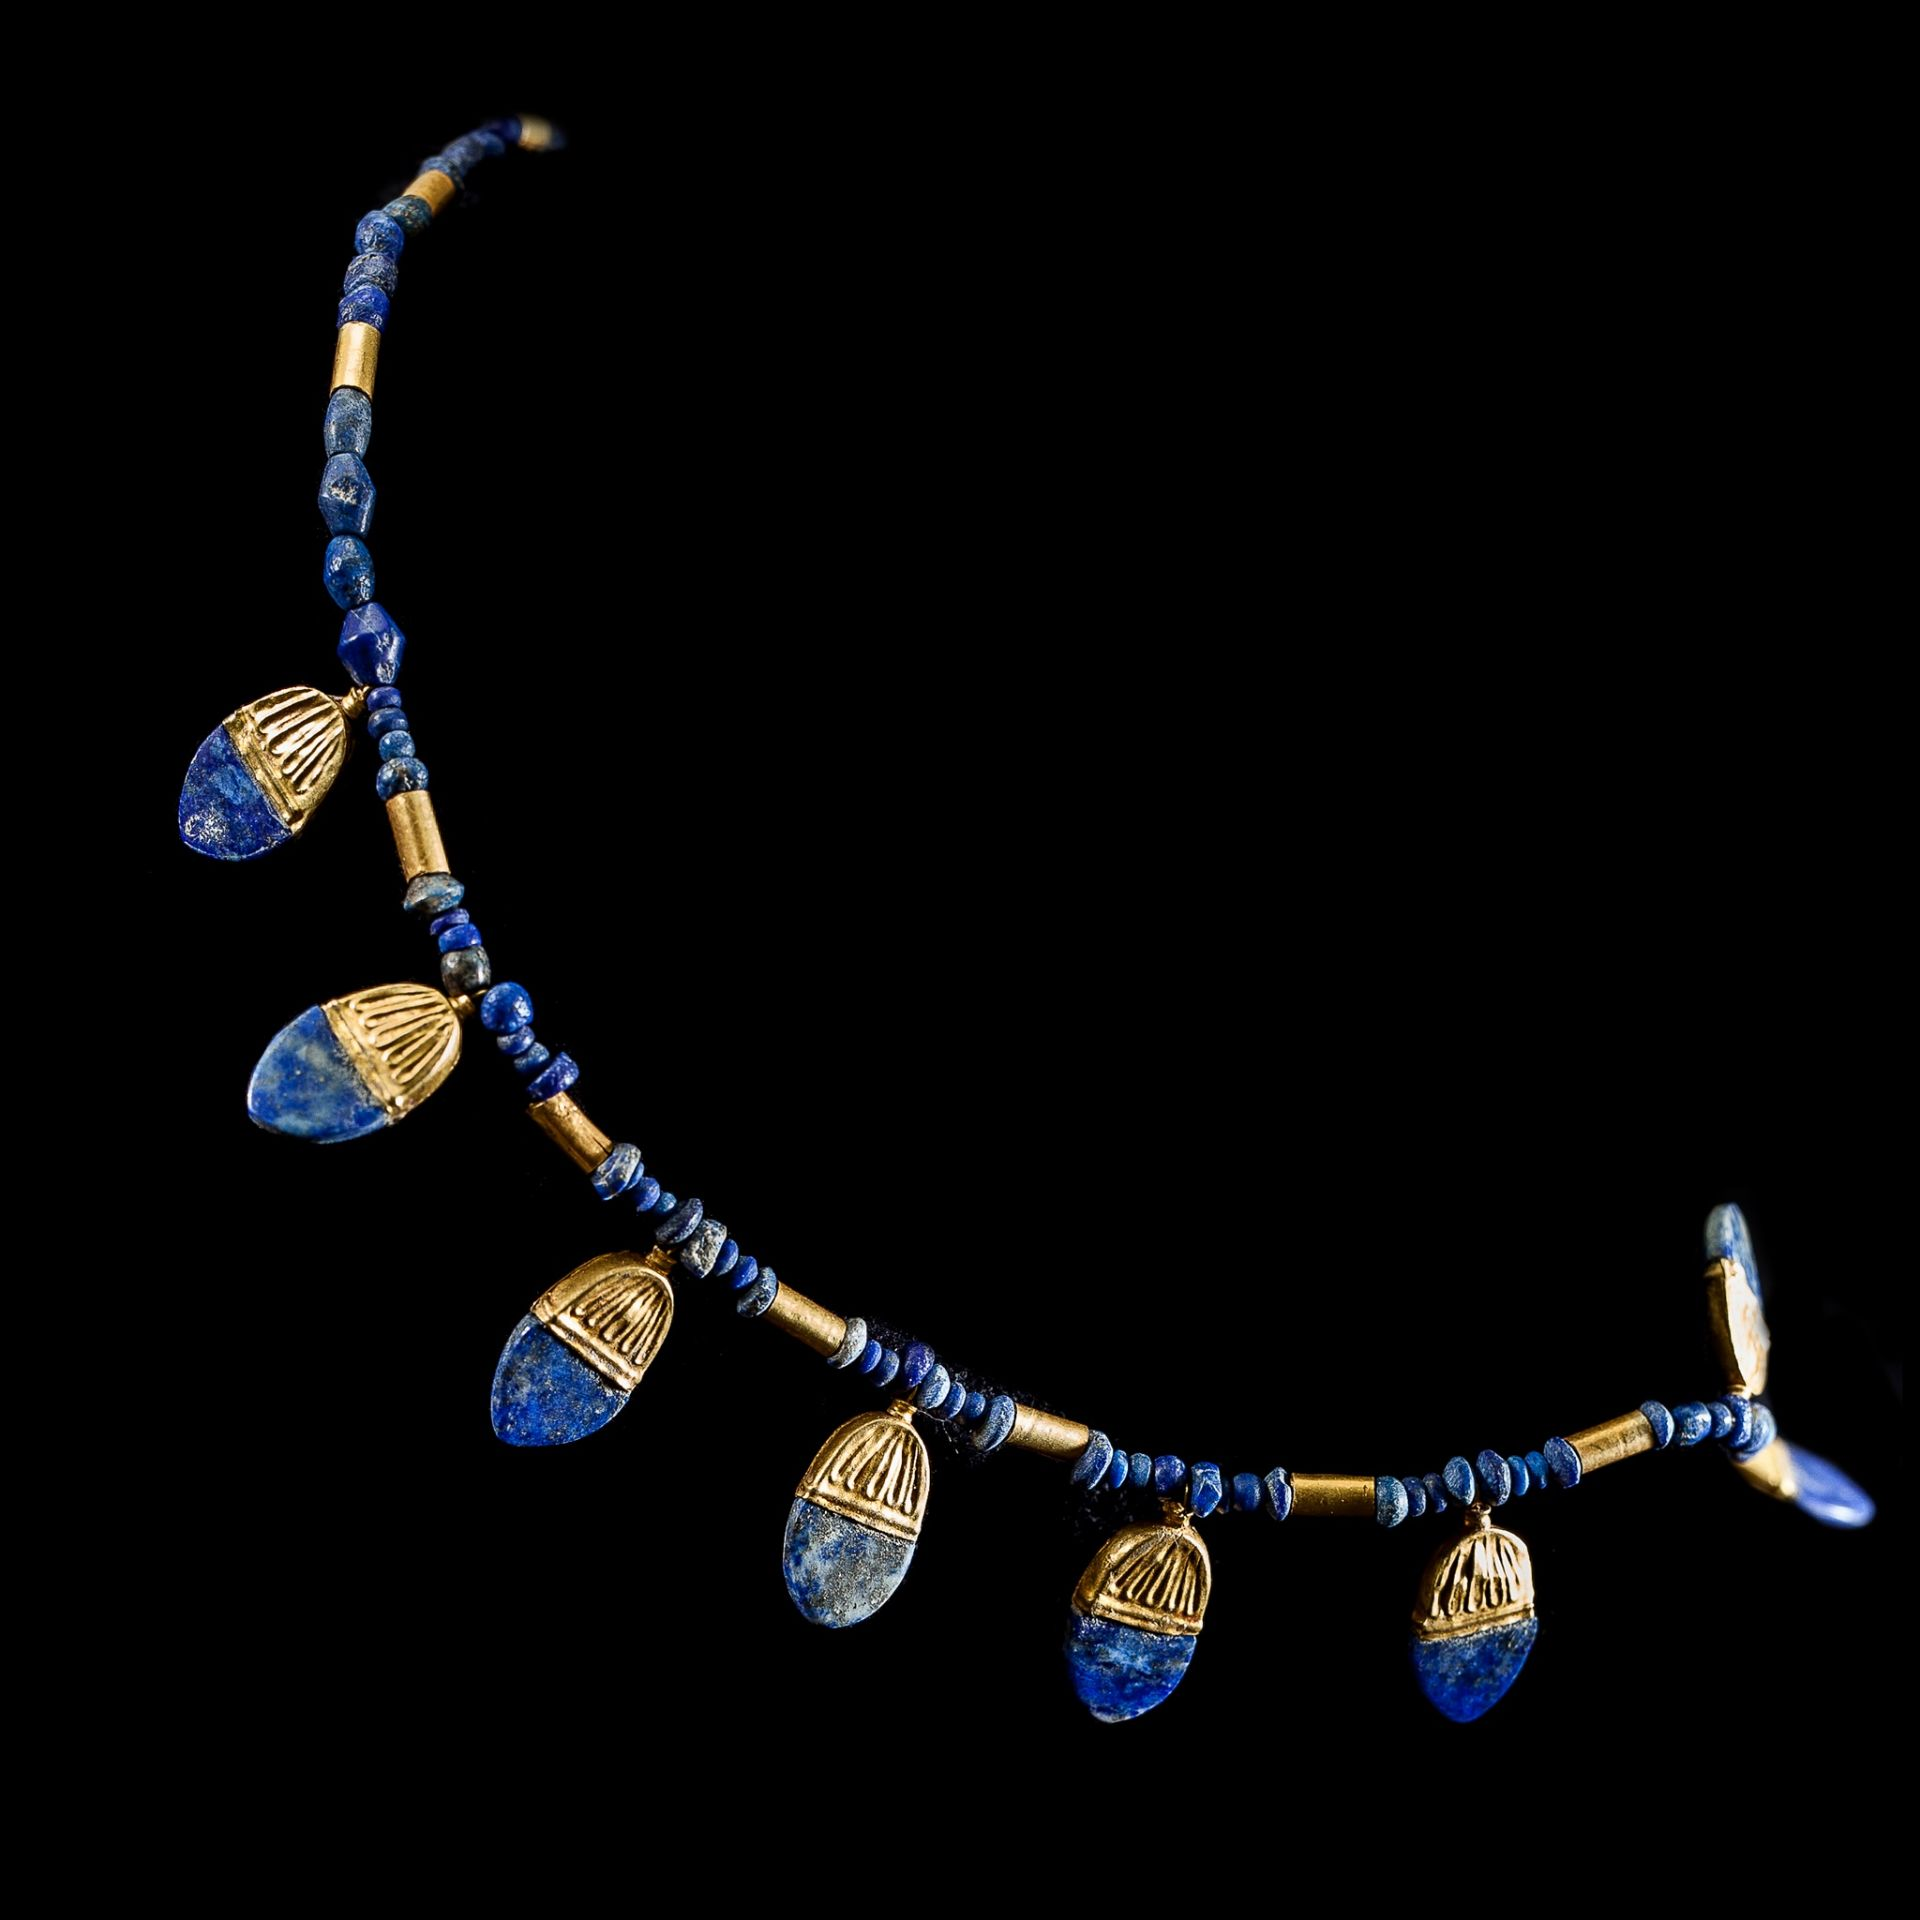 WESTERN ASIATIC LAPIS NECKLACE WITH GOLD PENDANTS NEAR EAST, 1ST MILLENNIUM B.C. - Image 3 of 3